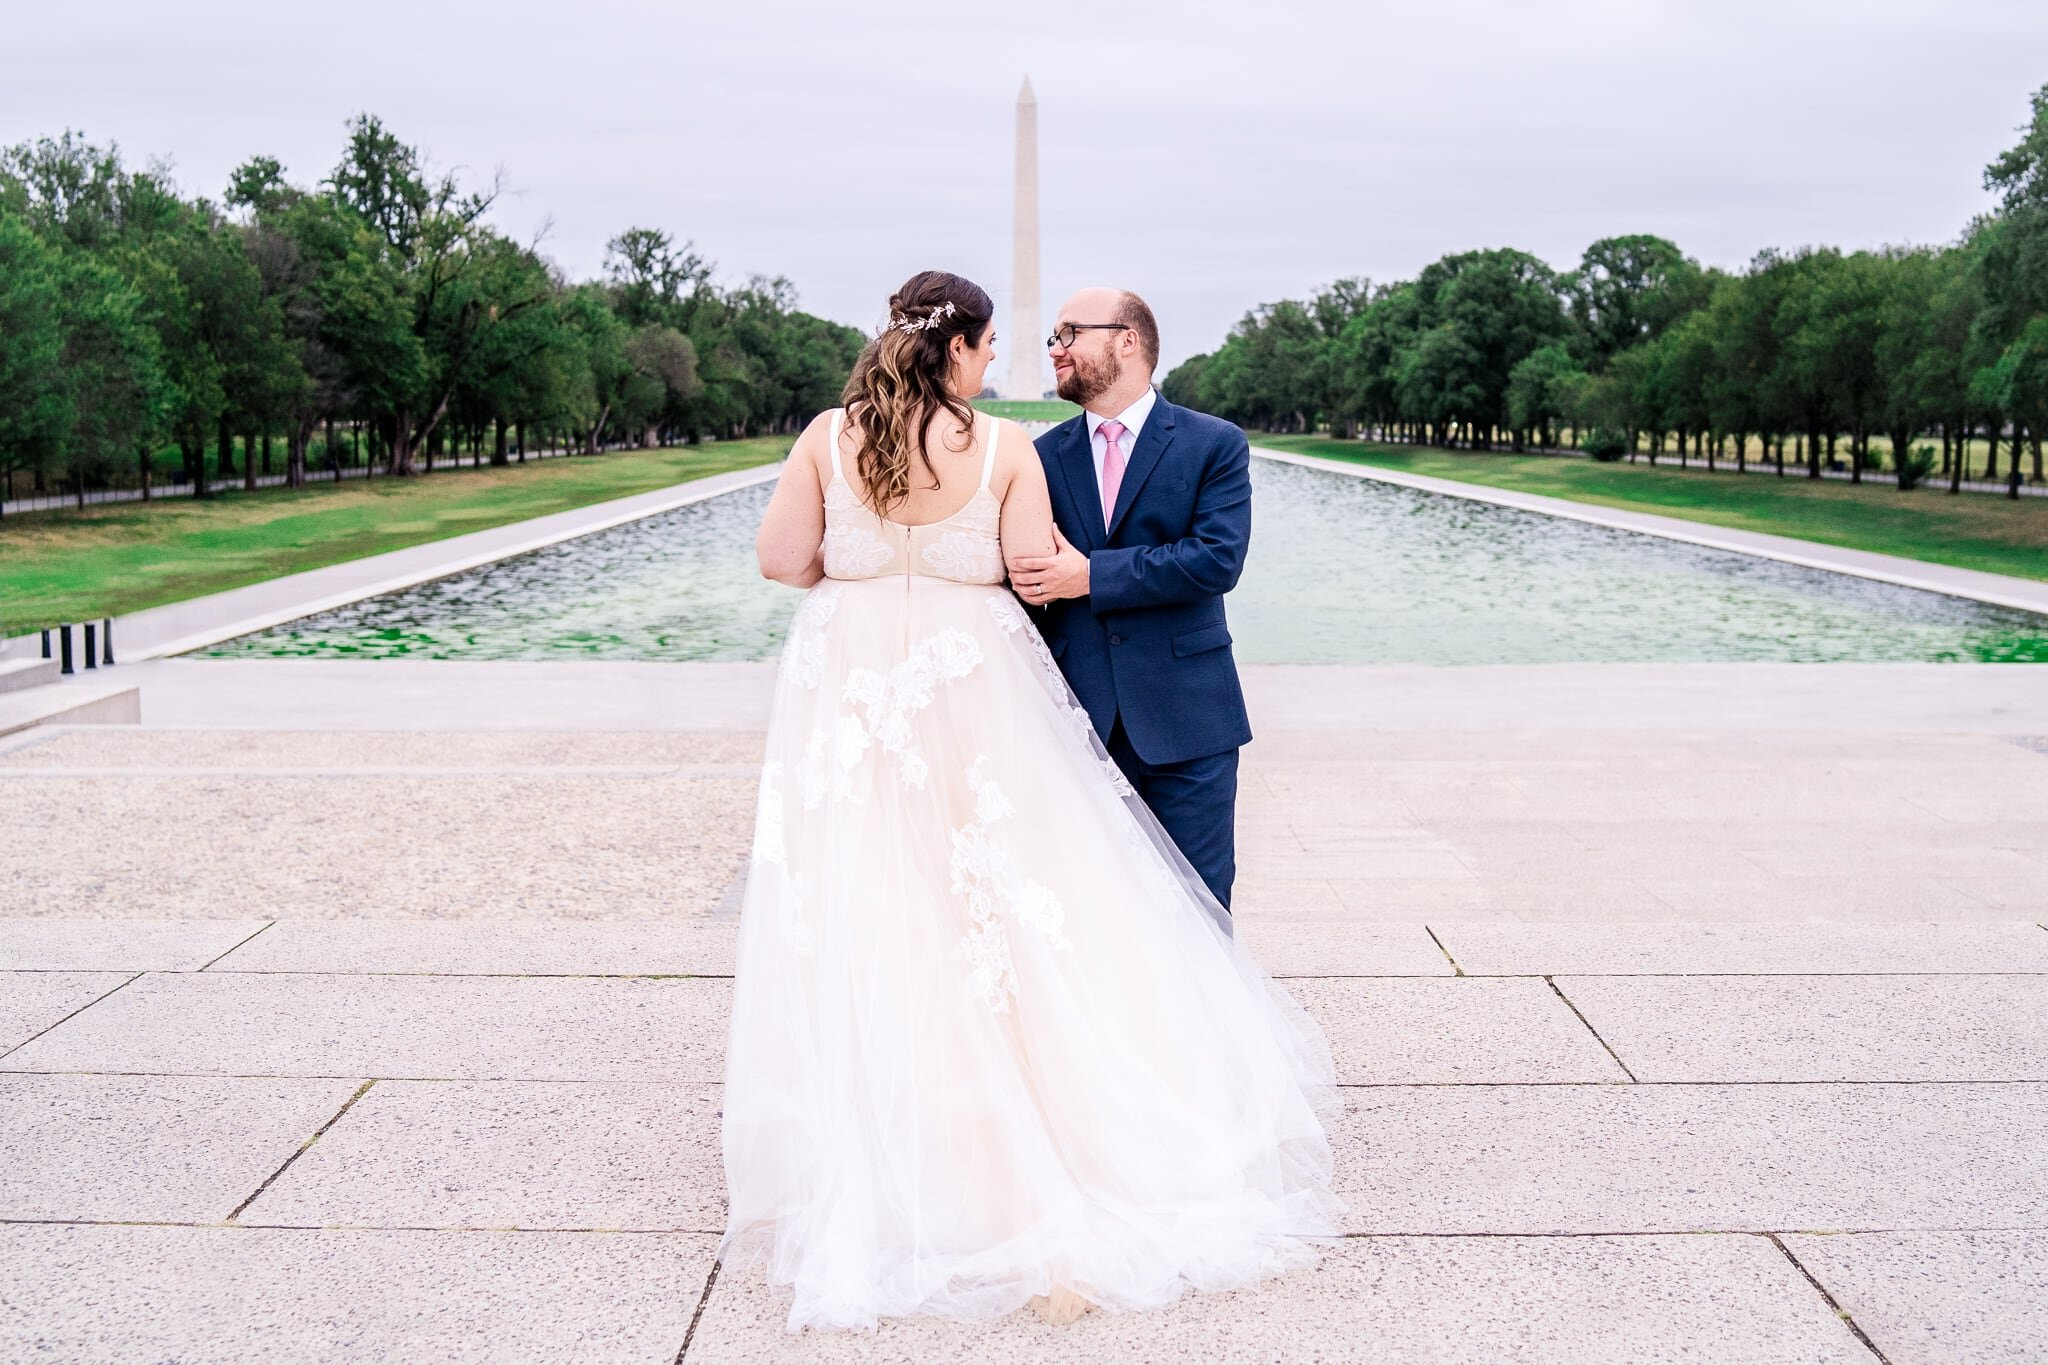 A bride faces away as her groom faces toward the camera and they look at each other as her tulle dress blows gently in the breeze on their fall wedding day at the Reflecting Pool in front of the Lincoln Memorial and Washington Monument in Washington, DC